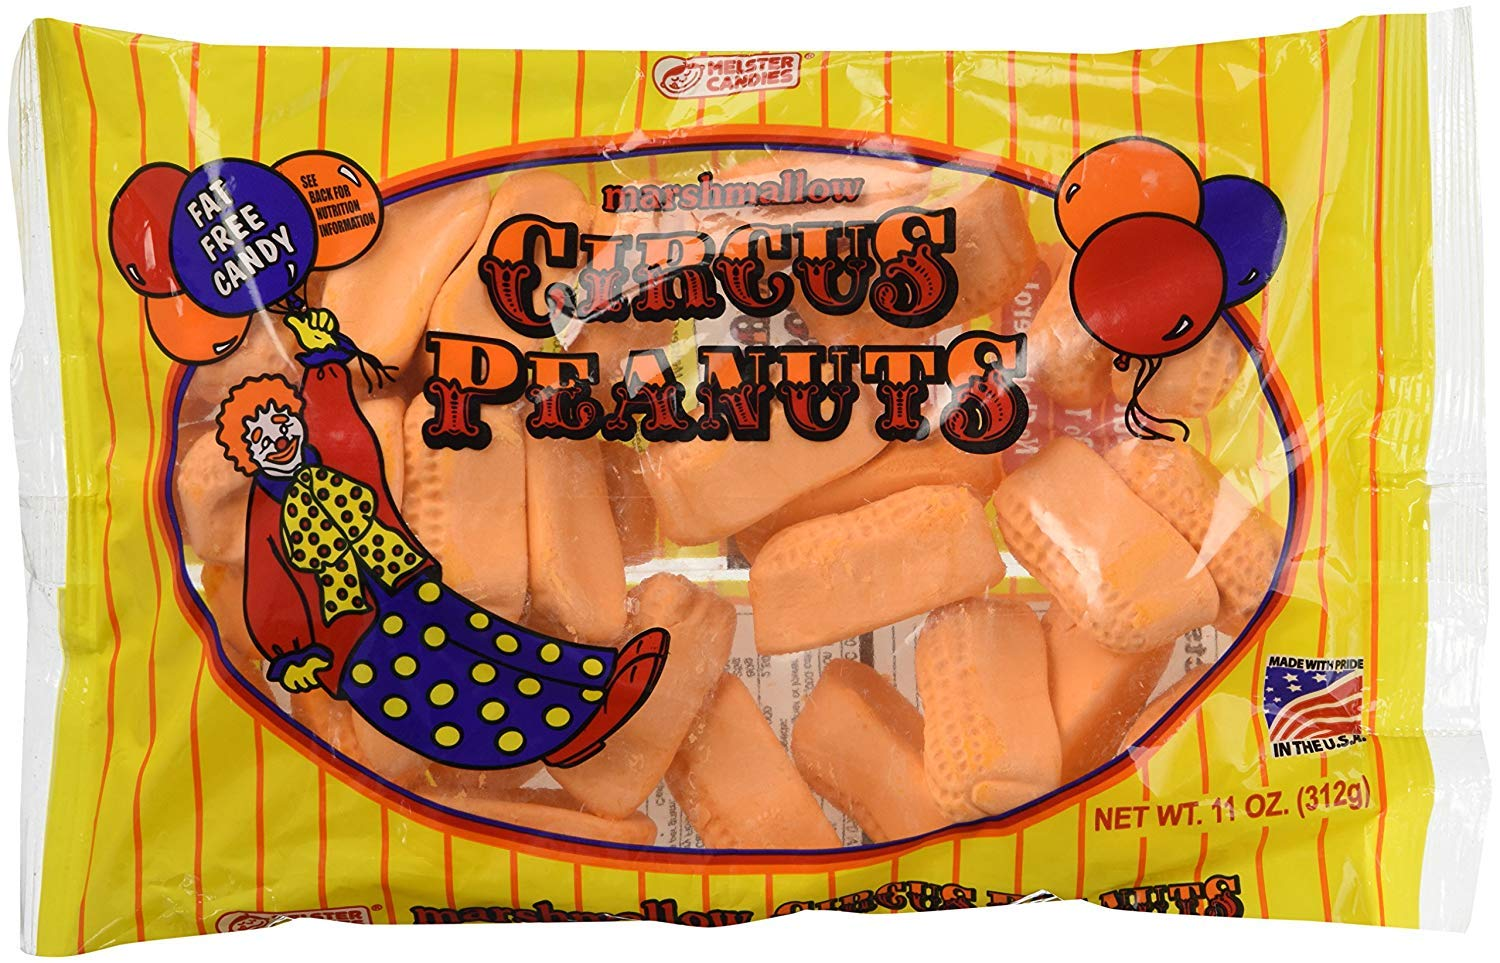 Melster Marshmallow Circus Peanuts 11 Pack 3 oz Max 88% Tampa Mall OFF Bags